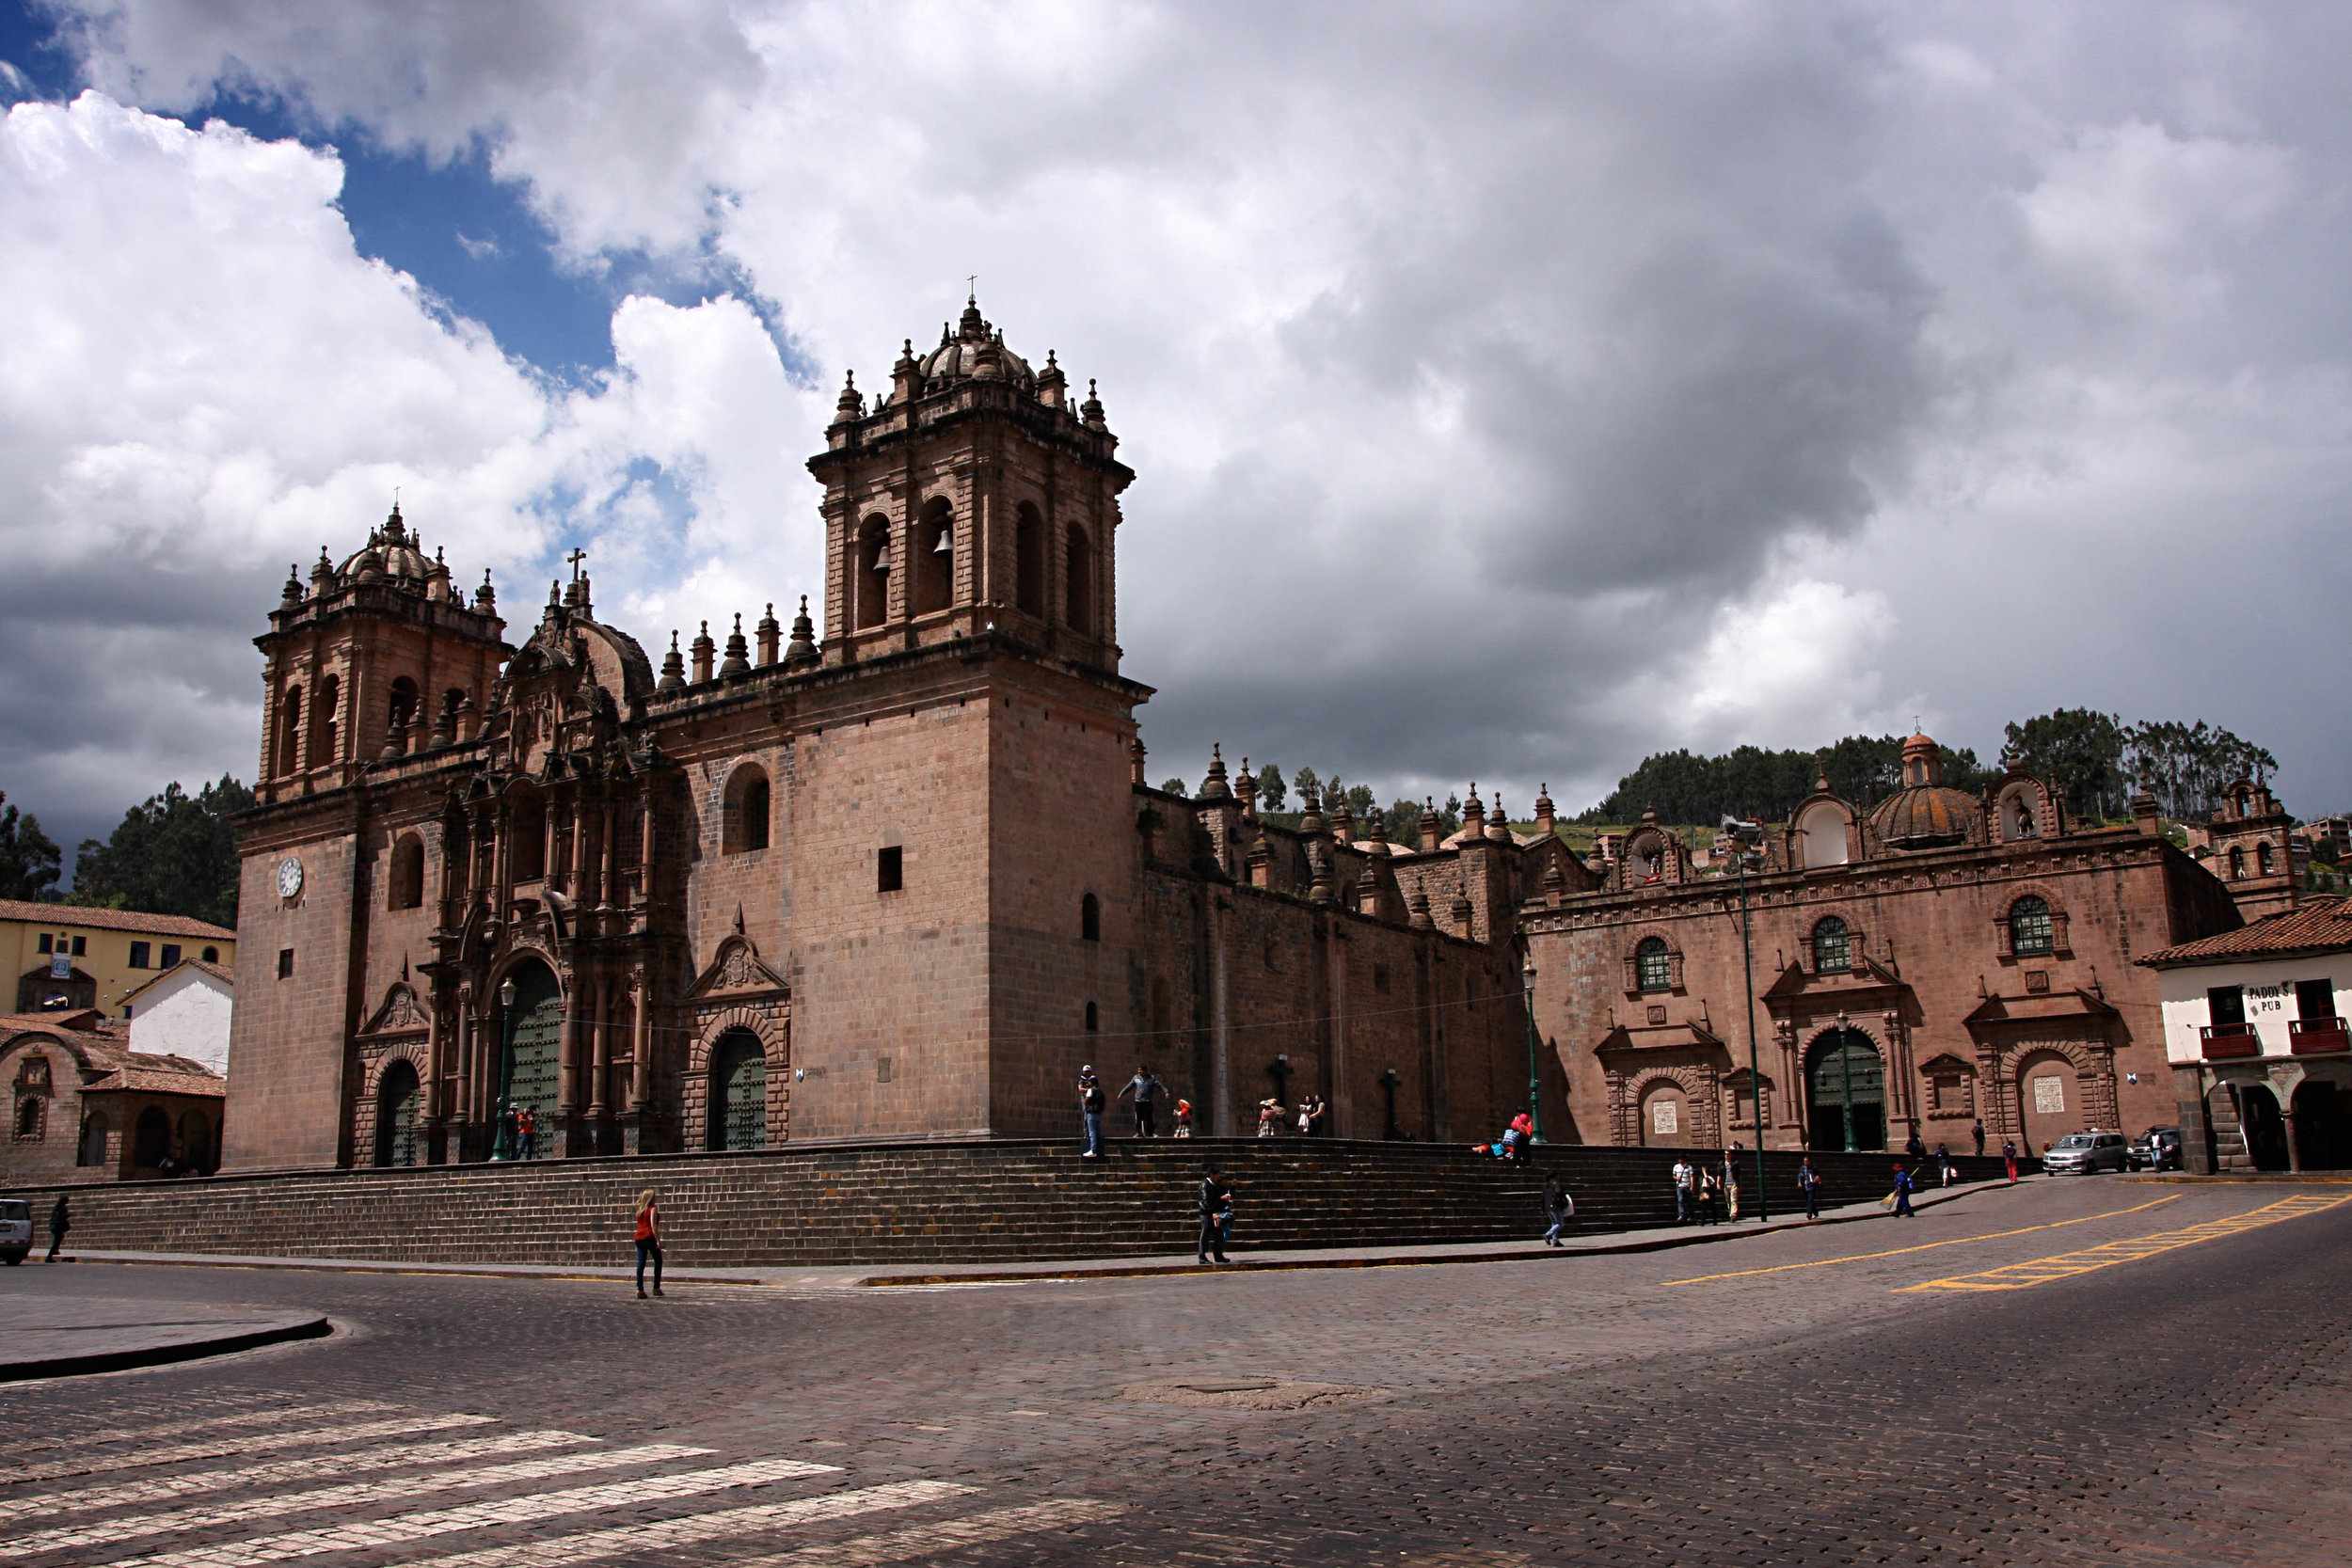 Cuzco's cathedral opened in 1654